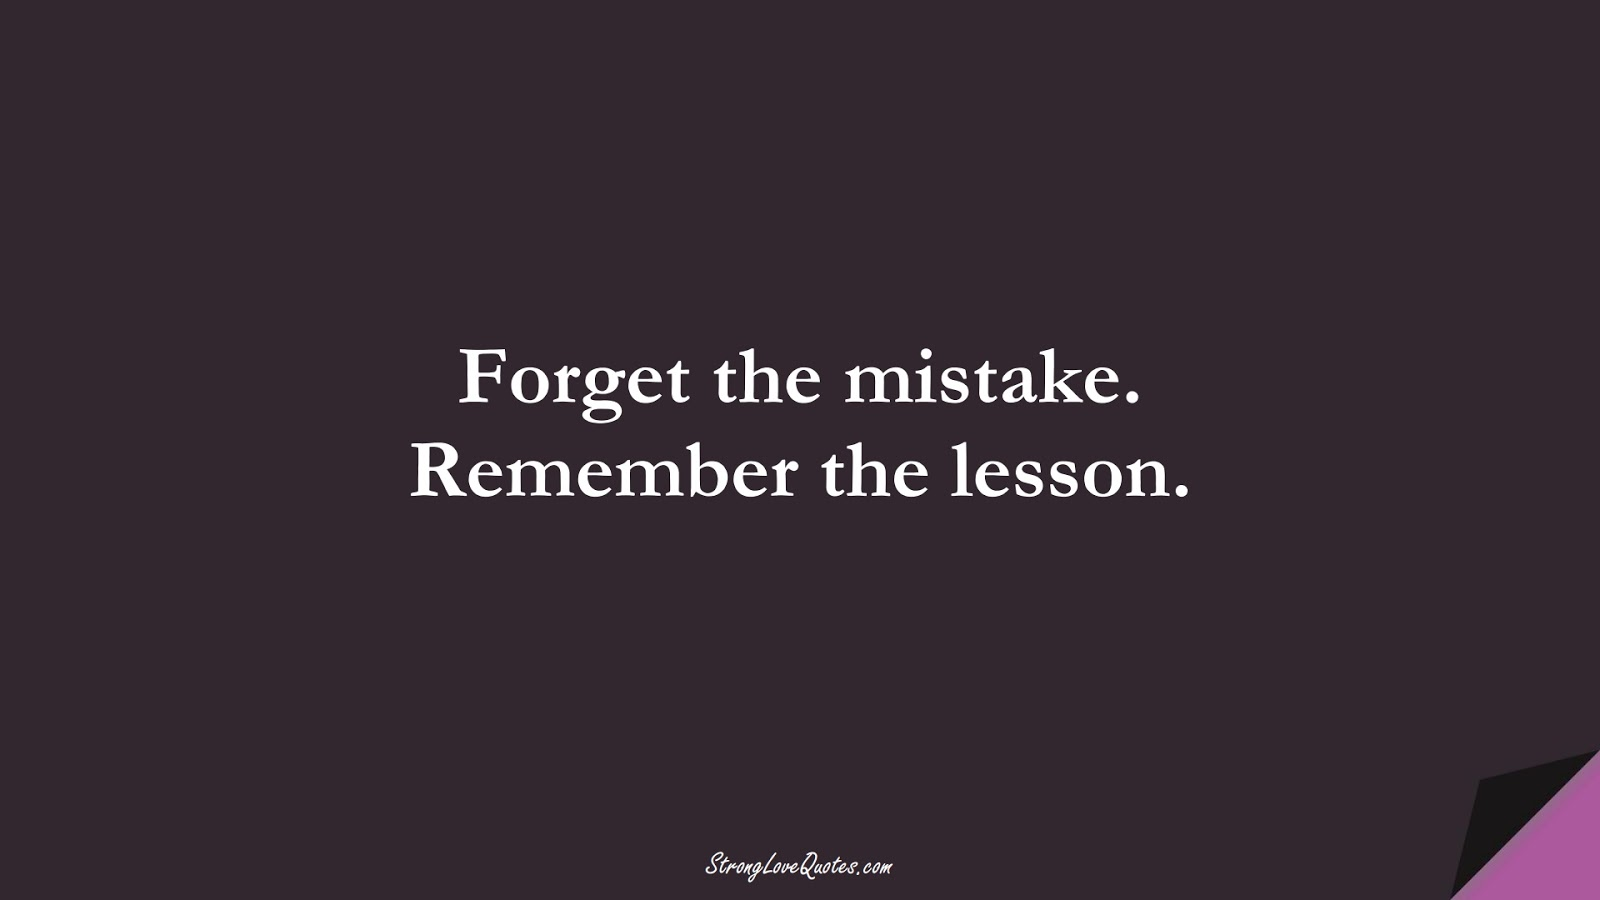 Forget the mistake. Remember the lesson.FALSE